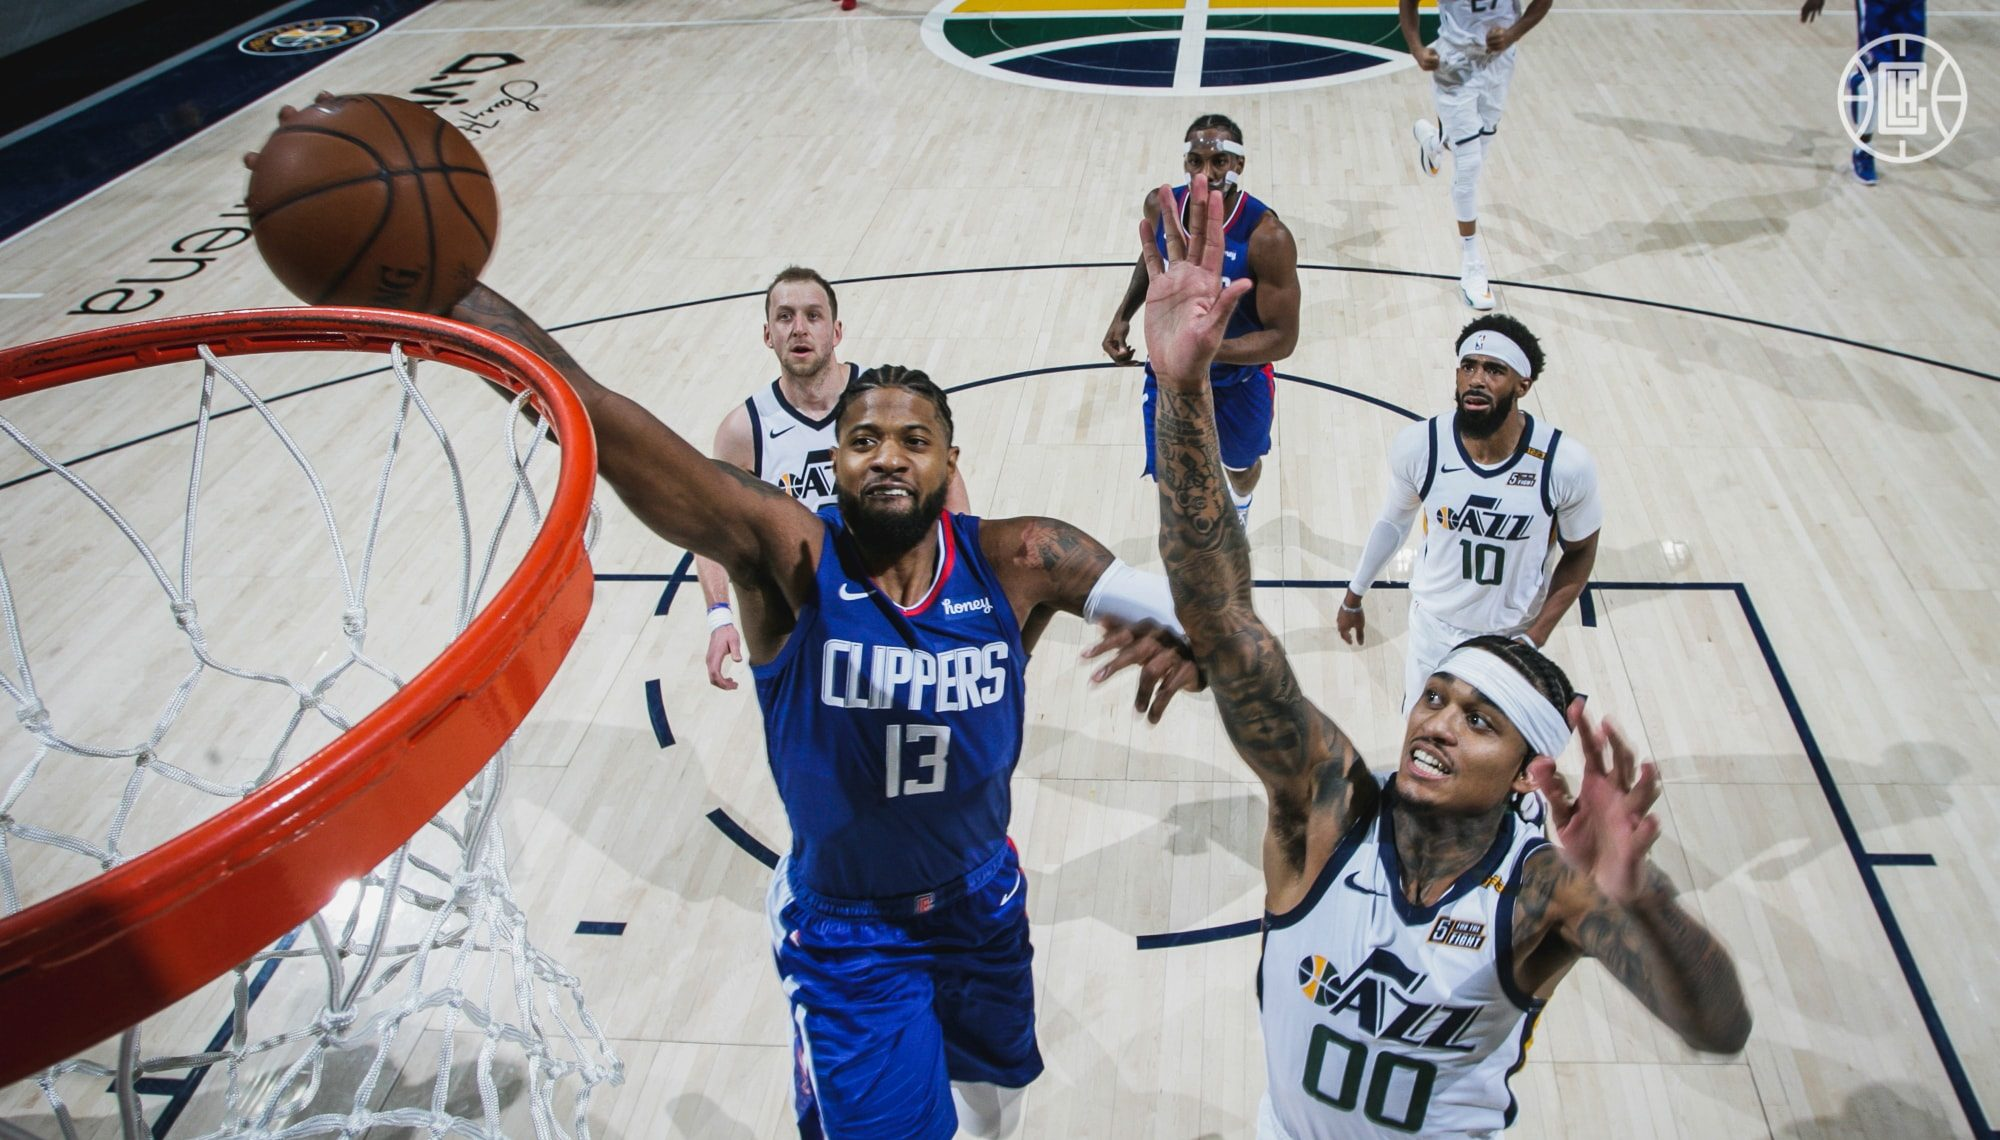 Clippers vs. Jazz: Game 2 Preview